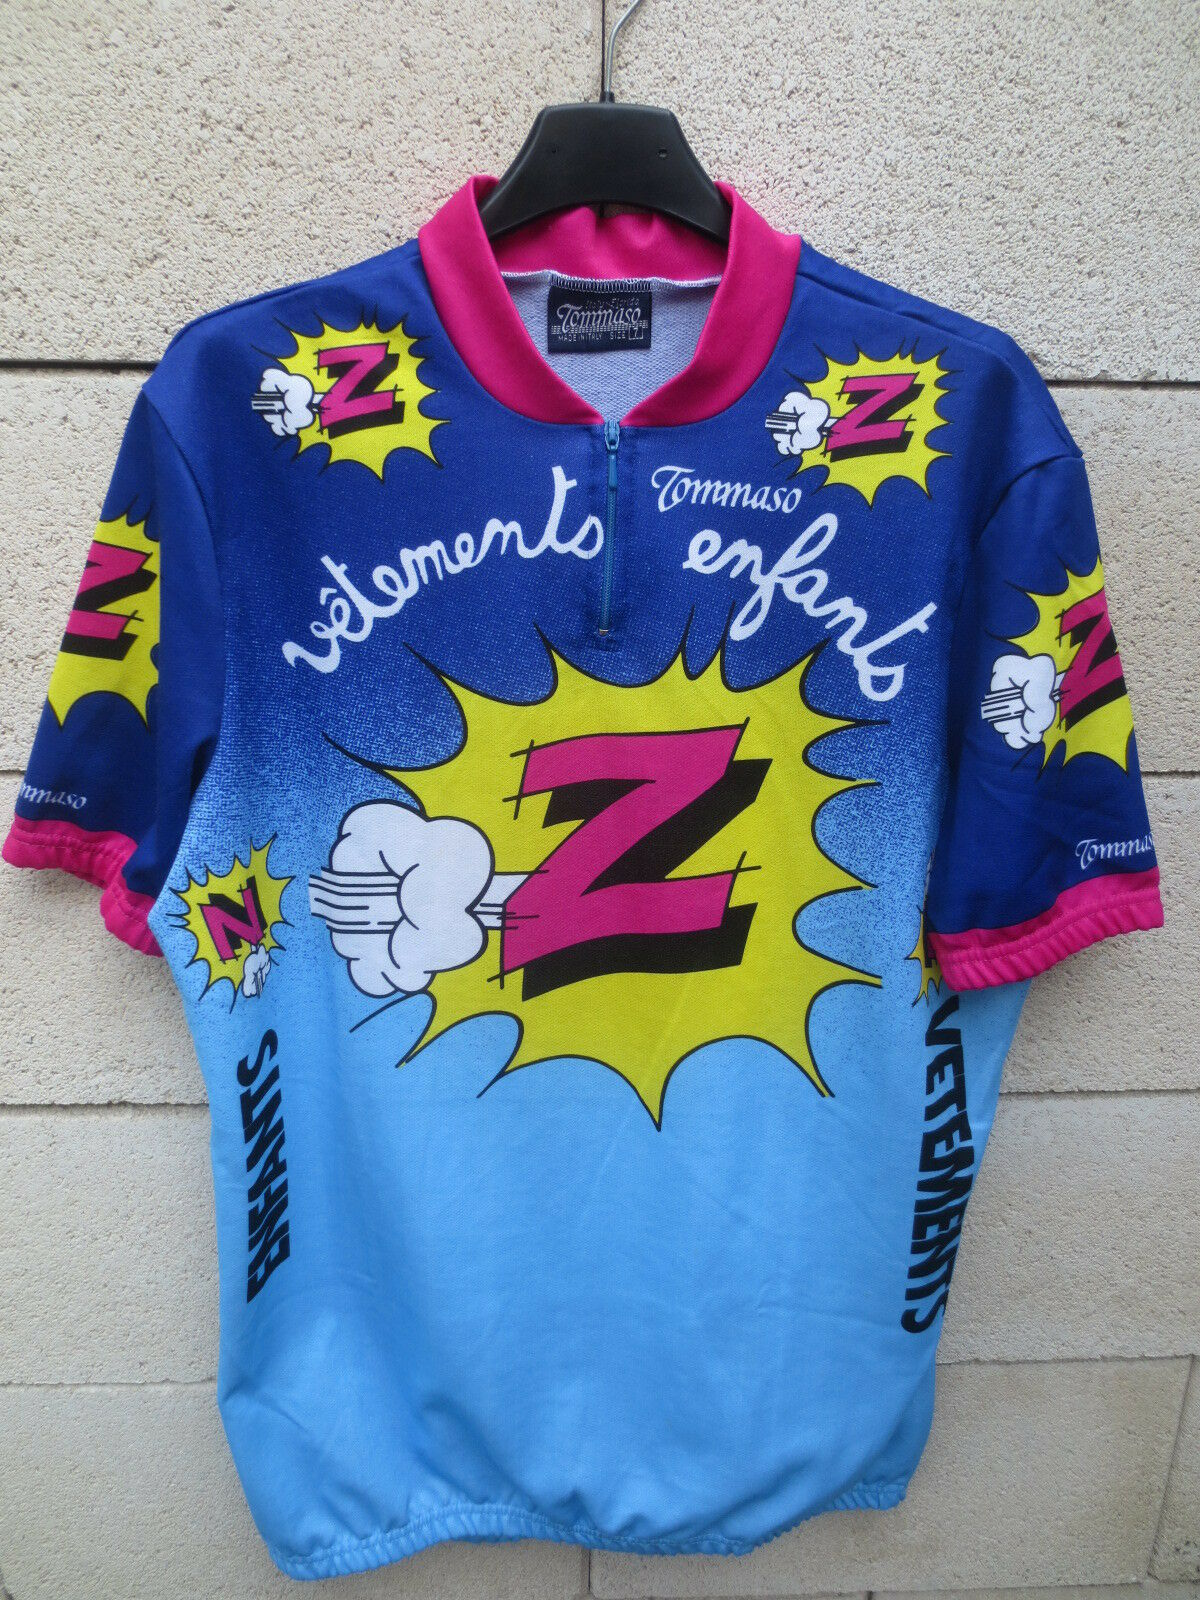 VINTAGE Maillot cycliste  Z Greg Lemond cycling jersey Tour France 1990 shirt 7  free and fast delivery available